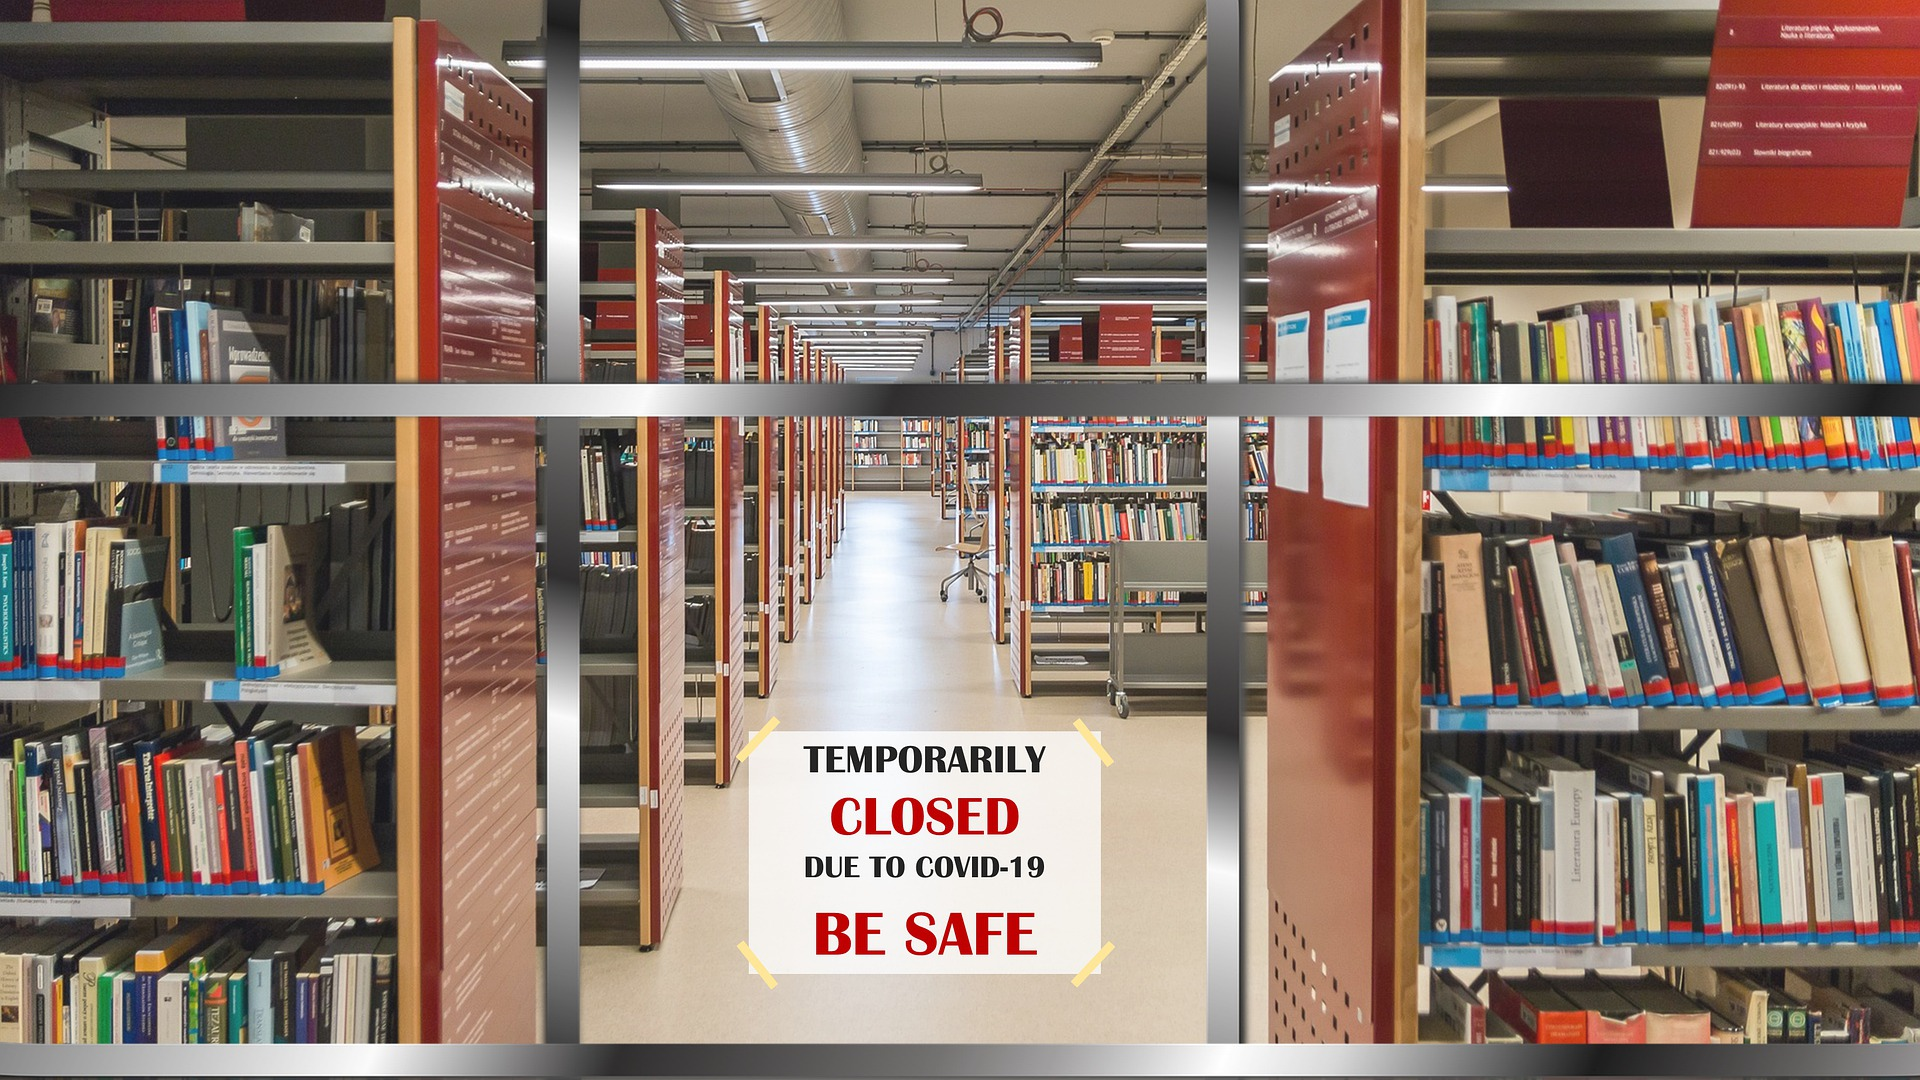 Library Closed for Covid-19